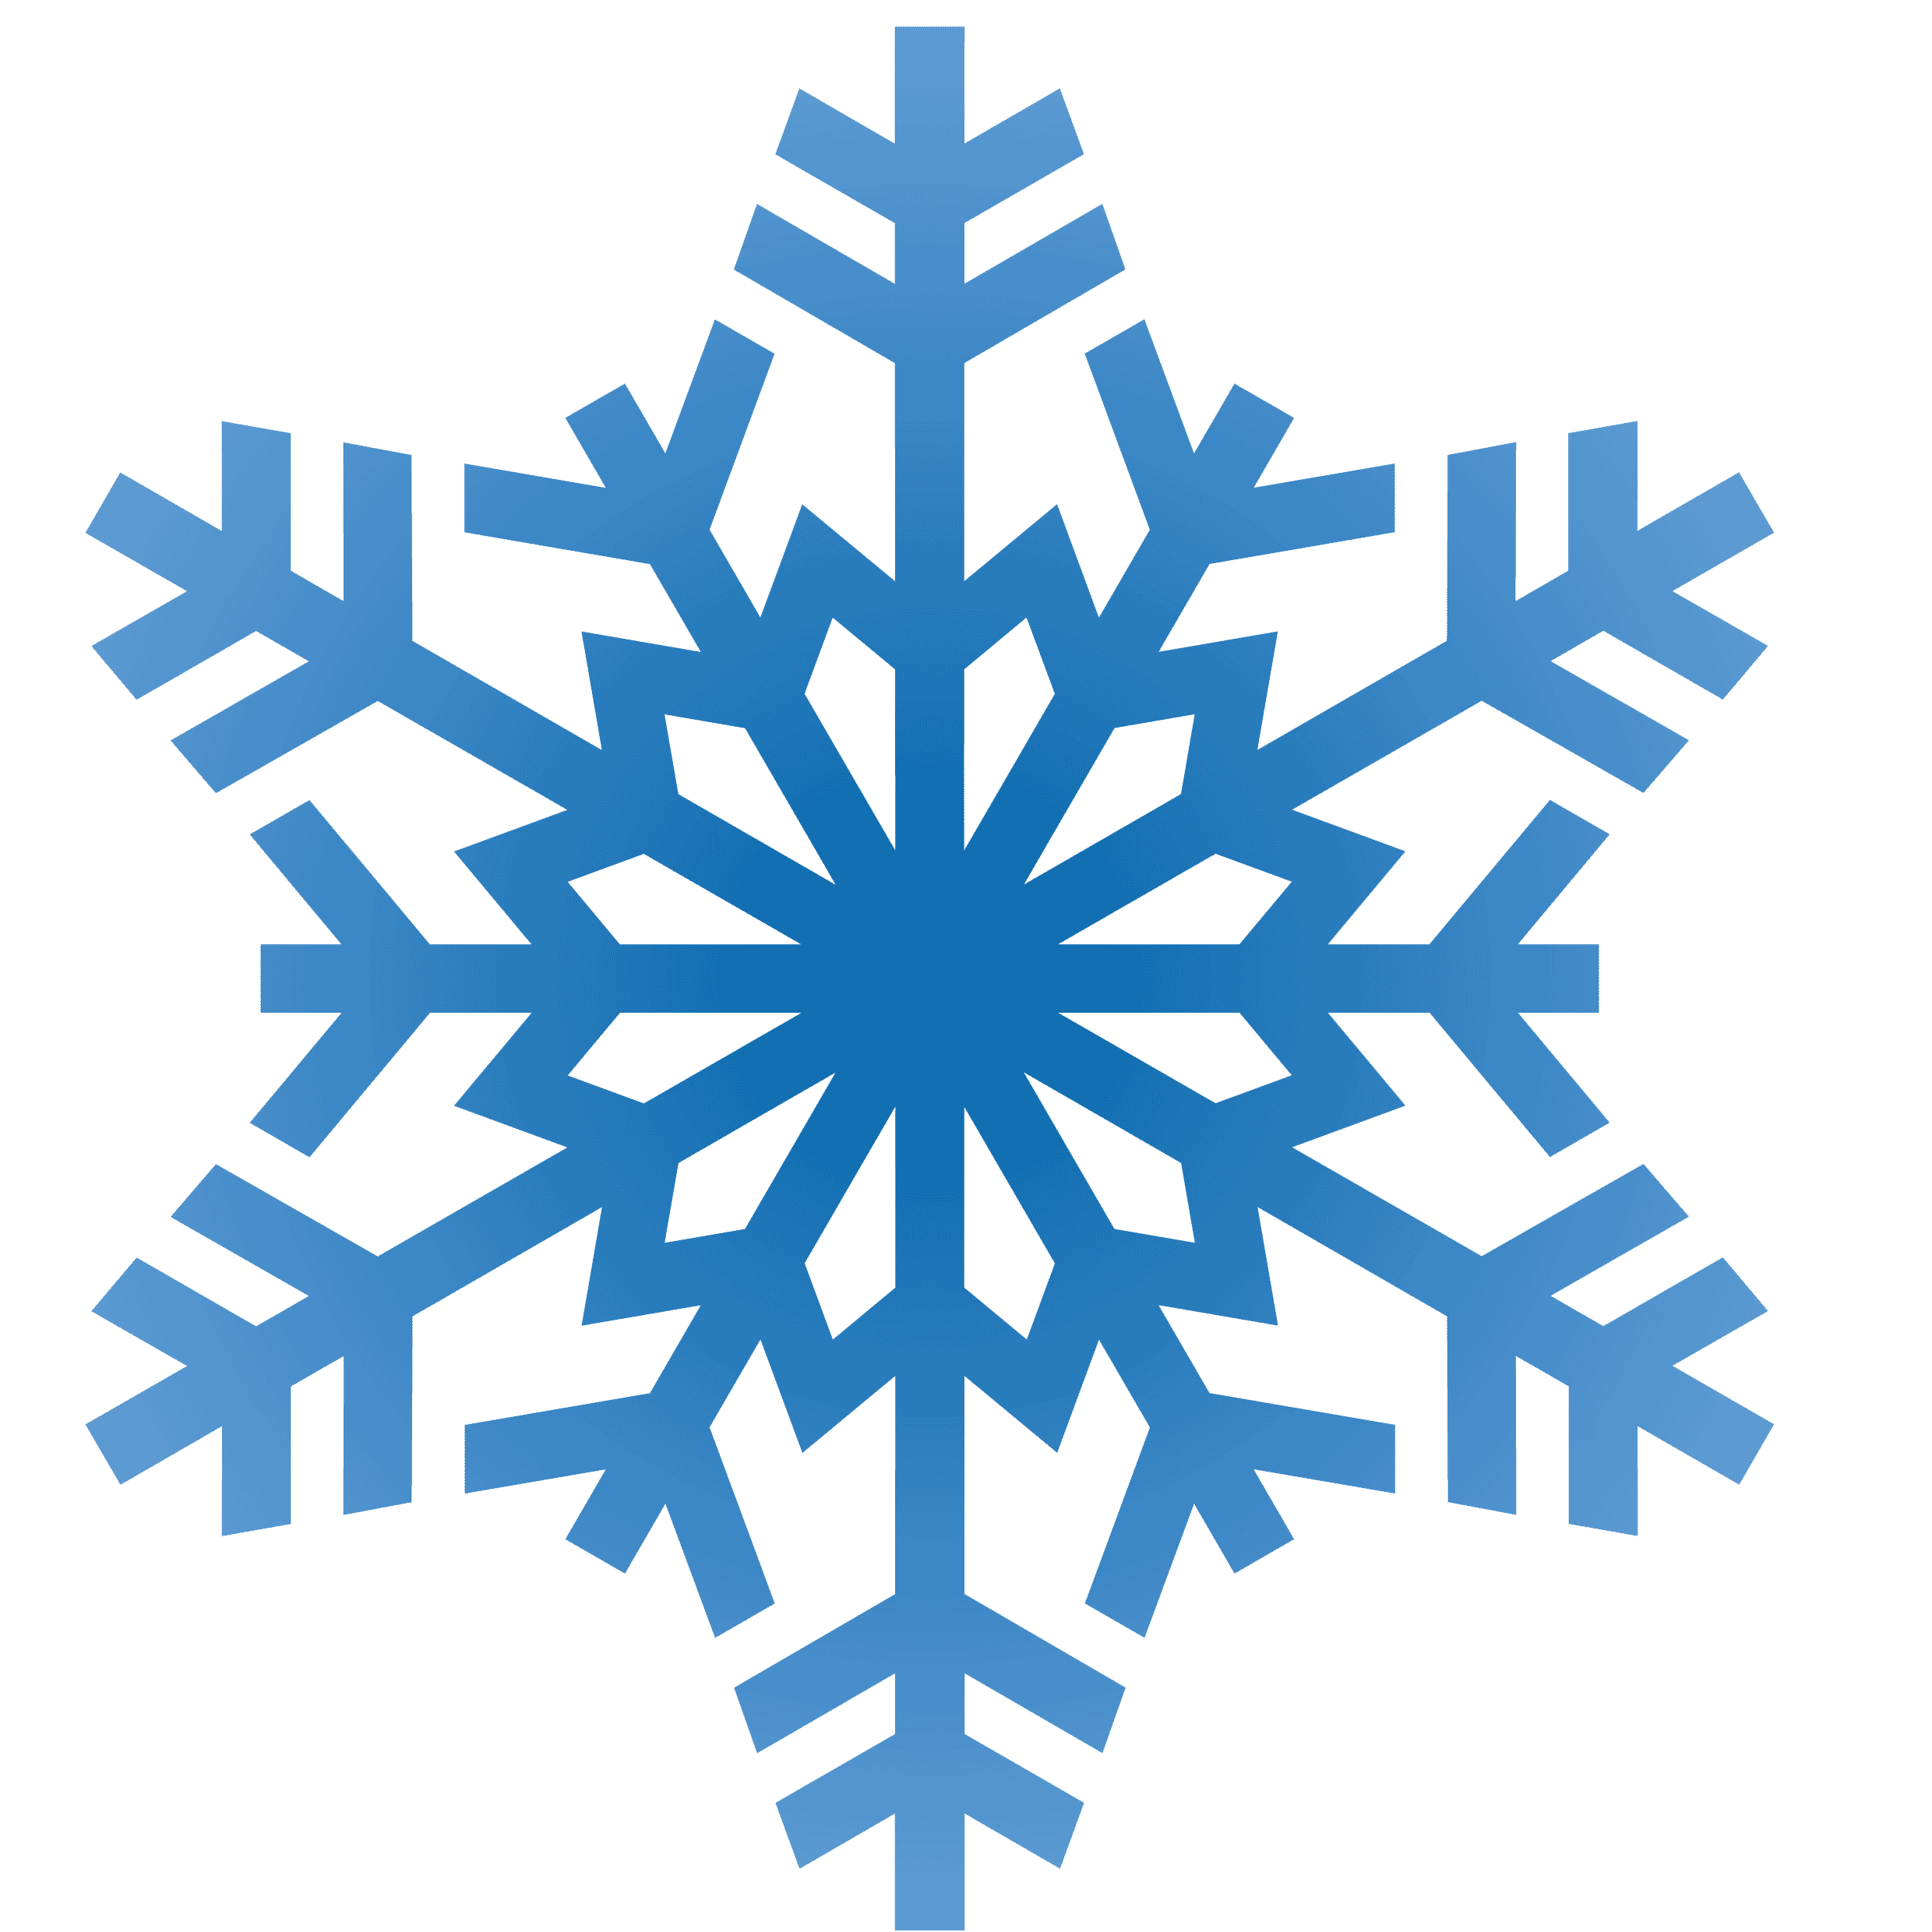 Ice and snowflake clipart